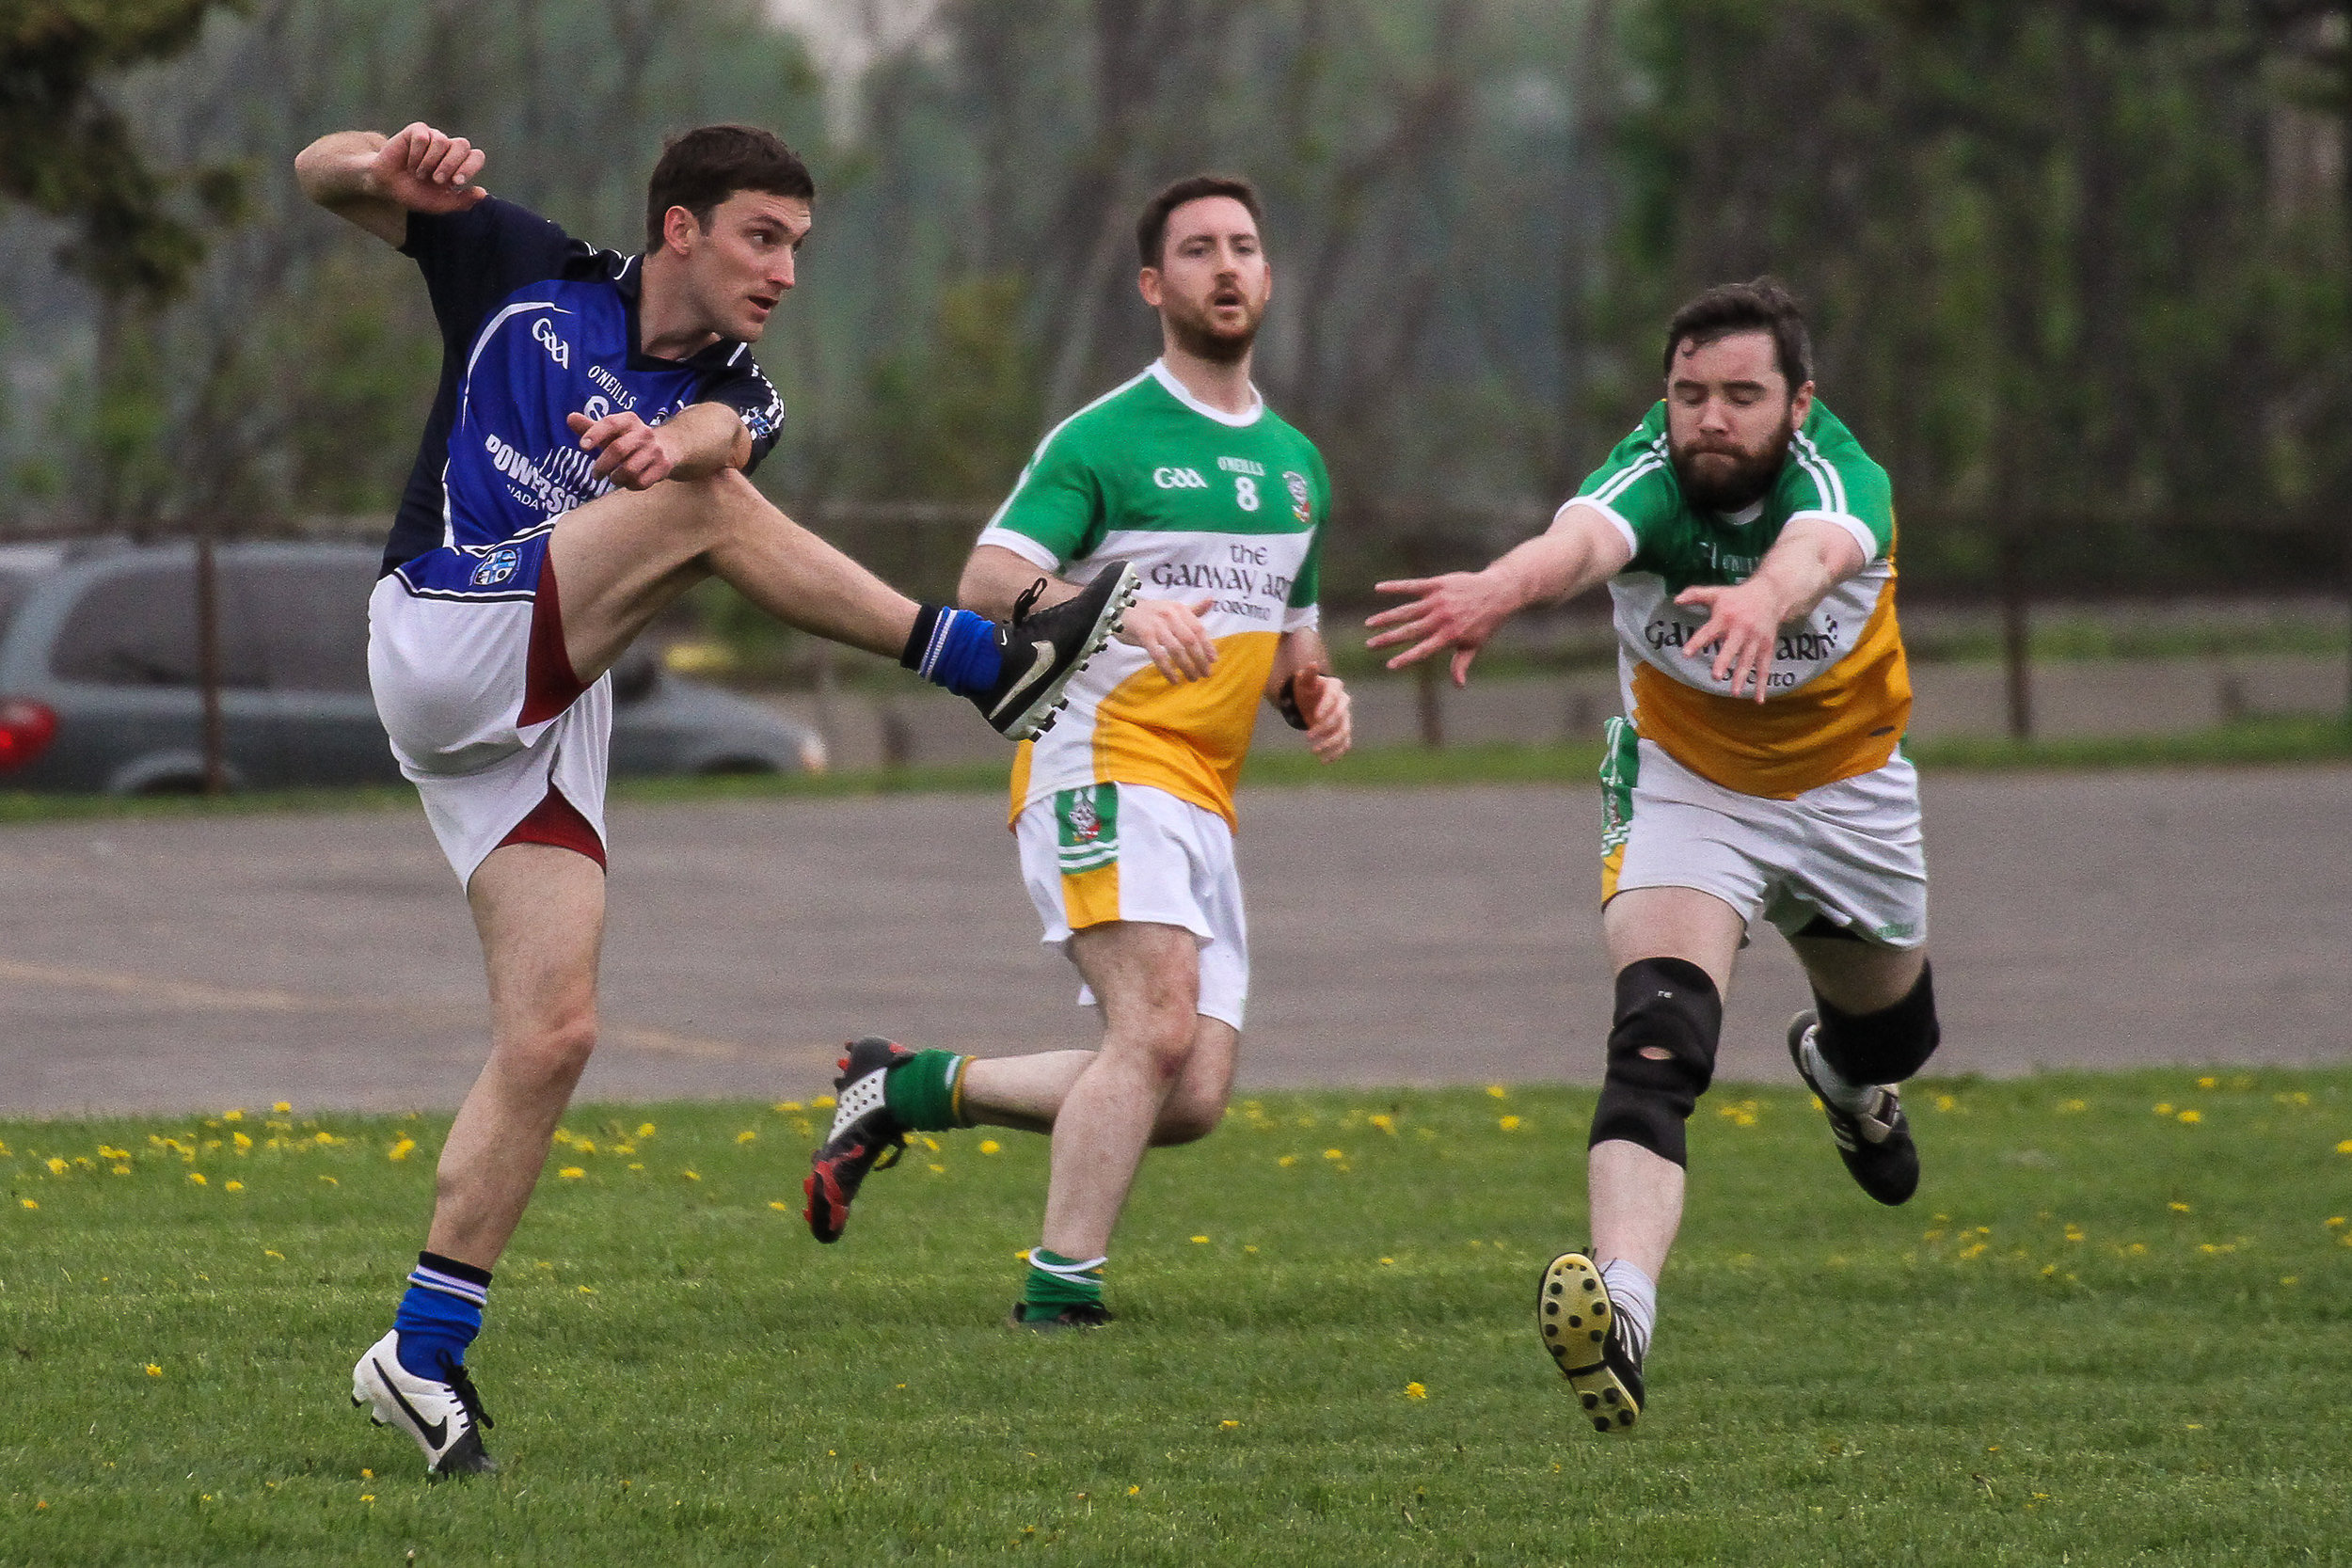 Toronto Gaels Gaelic Football Club - Montreal May Tournament 2015 - EmmetsvsGaels.jpg